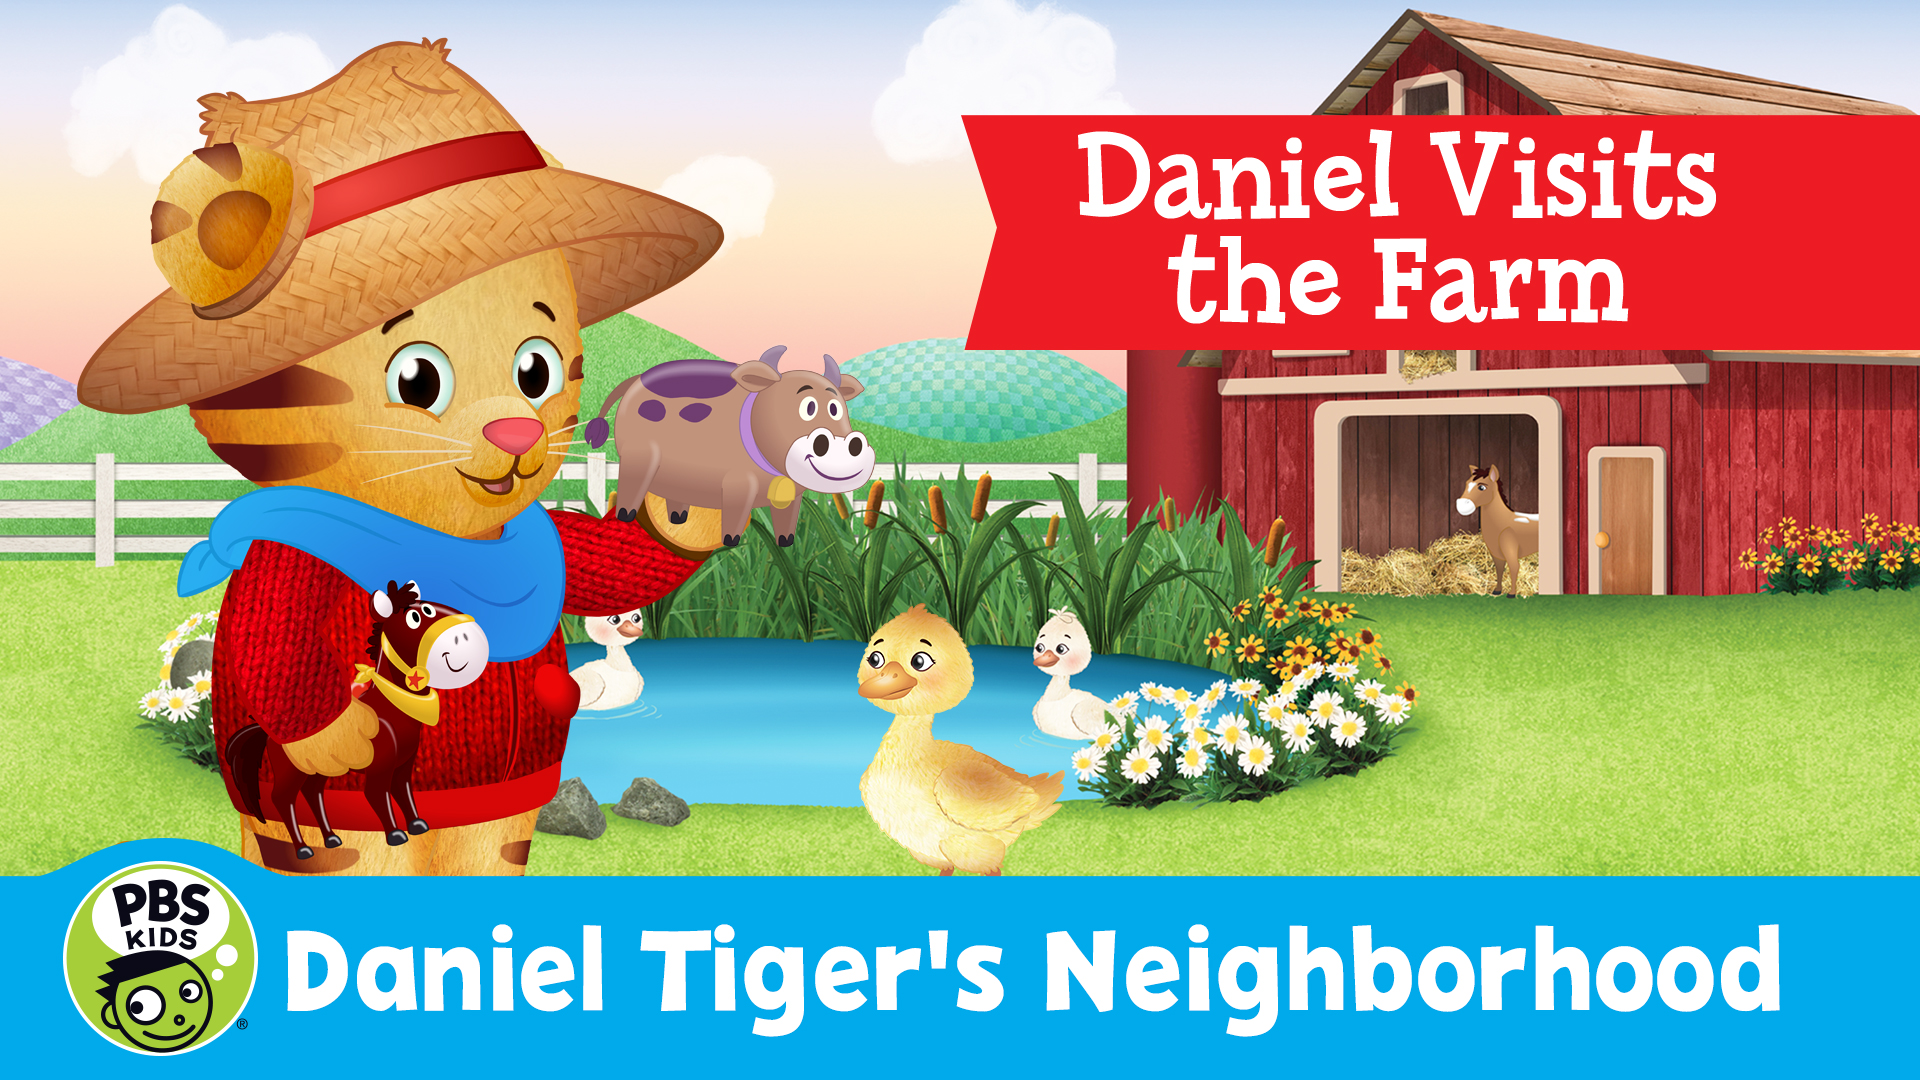 Daniel Tiger's Neighborhood: Daniel Visits the Farm